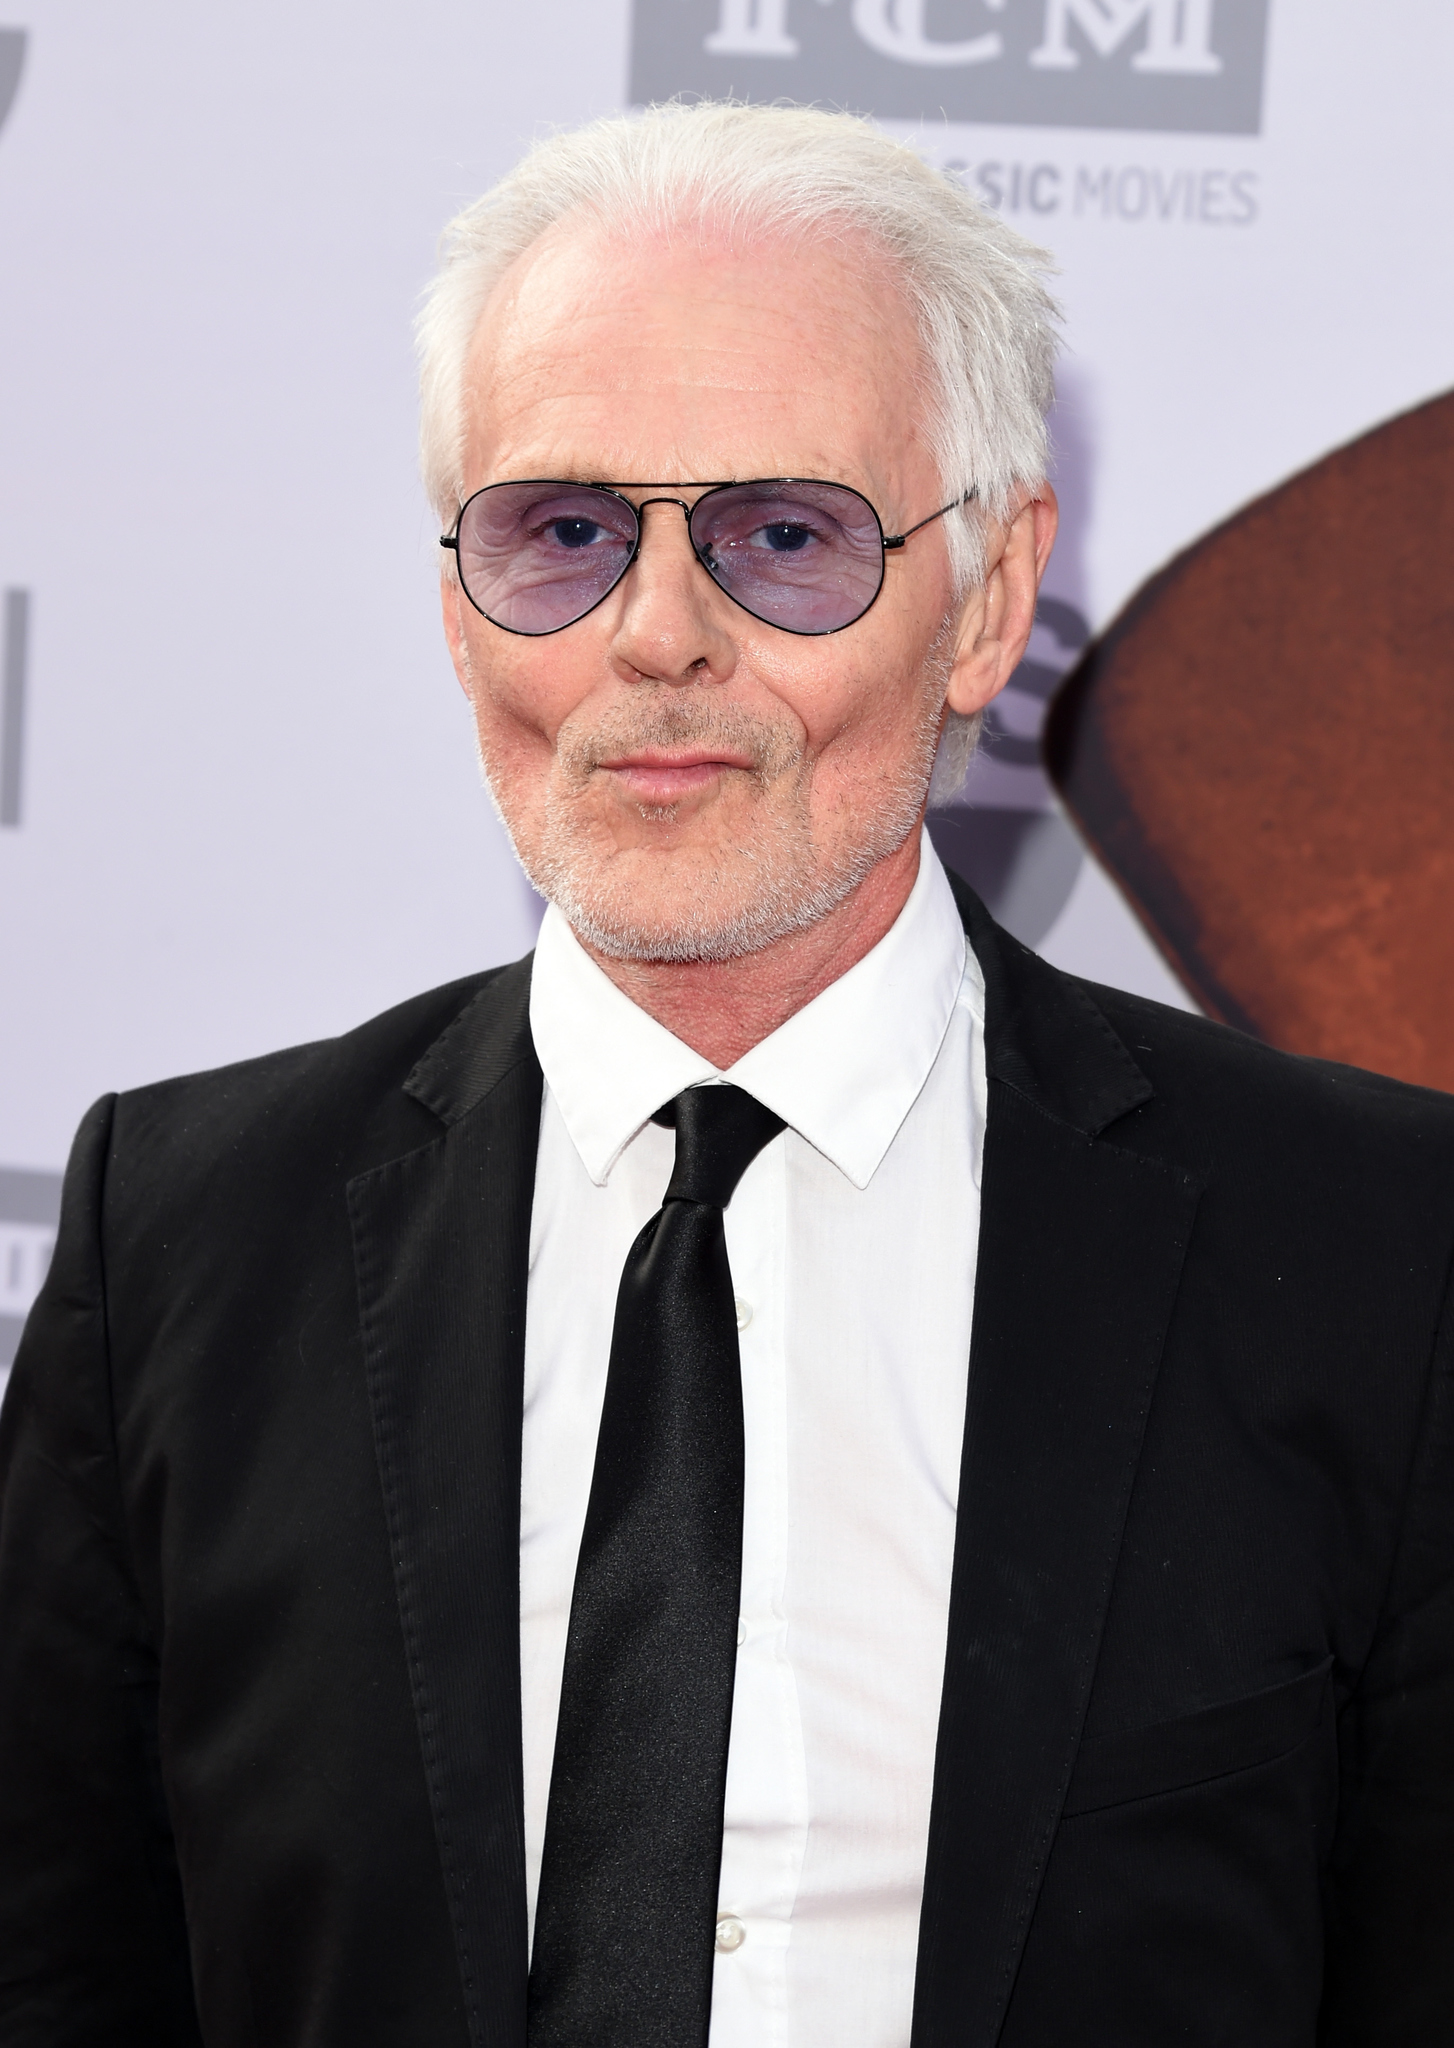 A recent picture of actor and singer Michael Des Barres at a red carpet event. He is wearing a sleek black suit and transparent blue lens shades